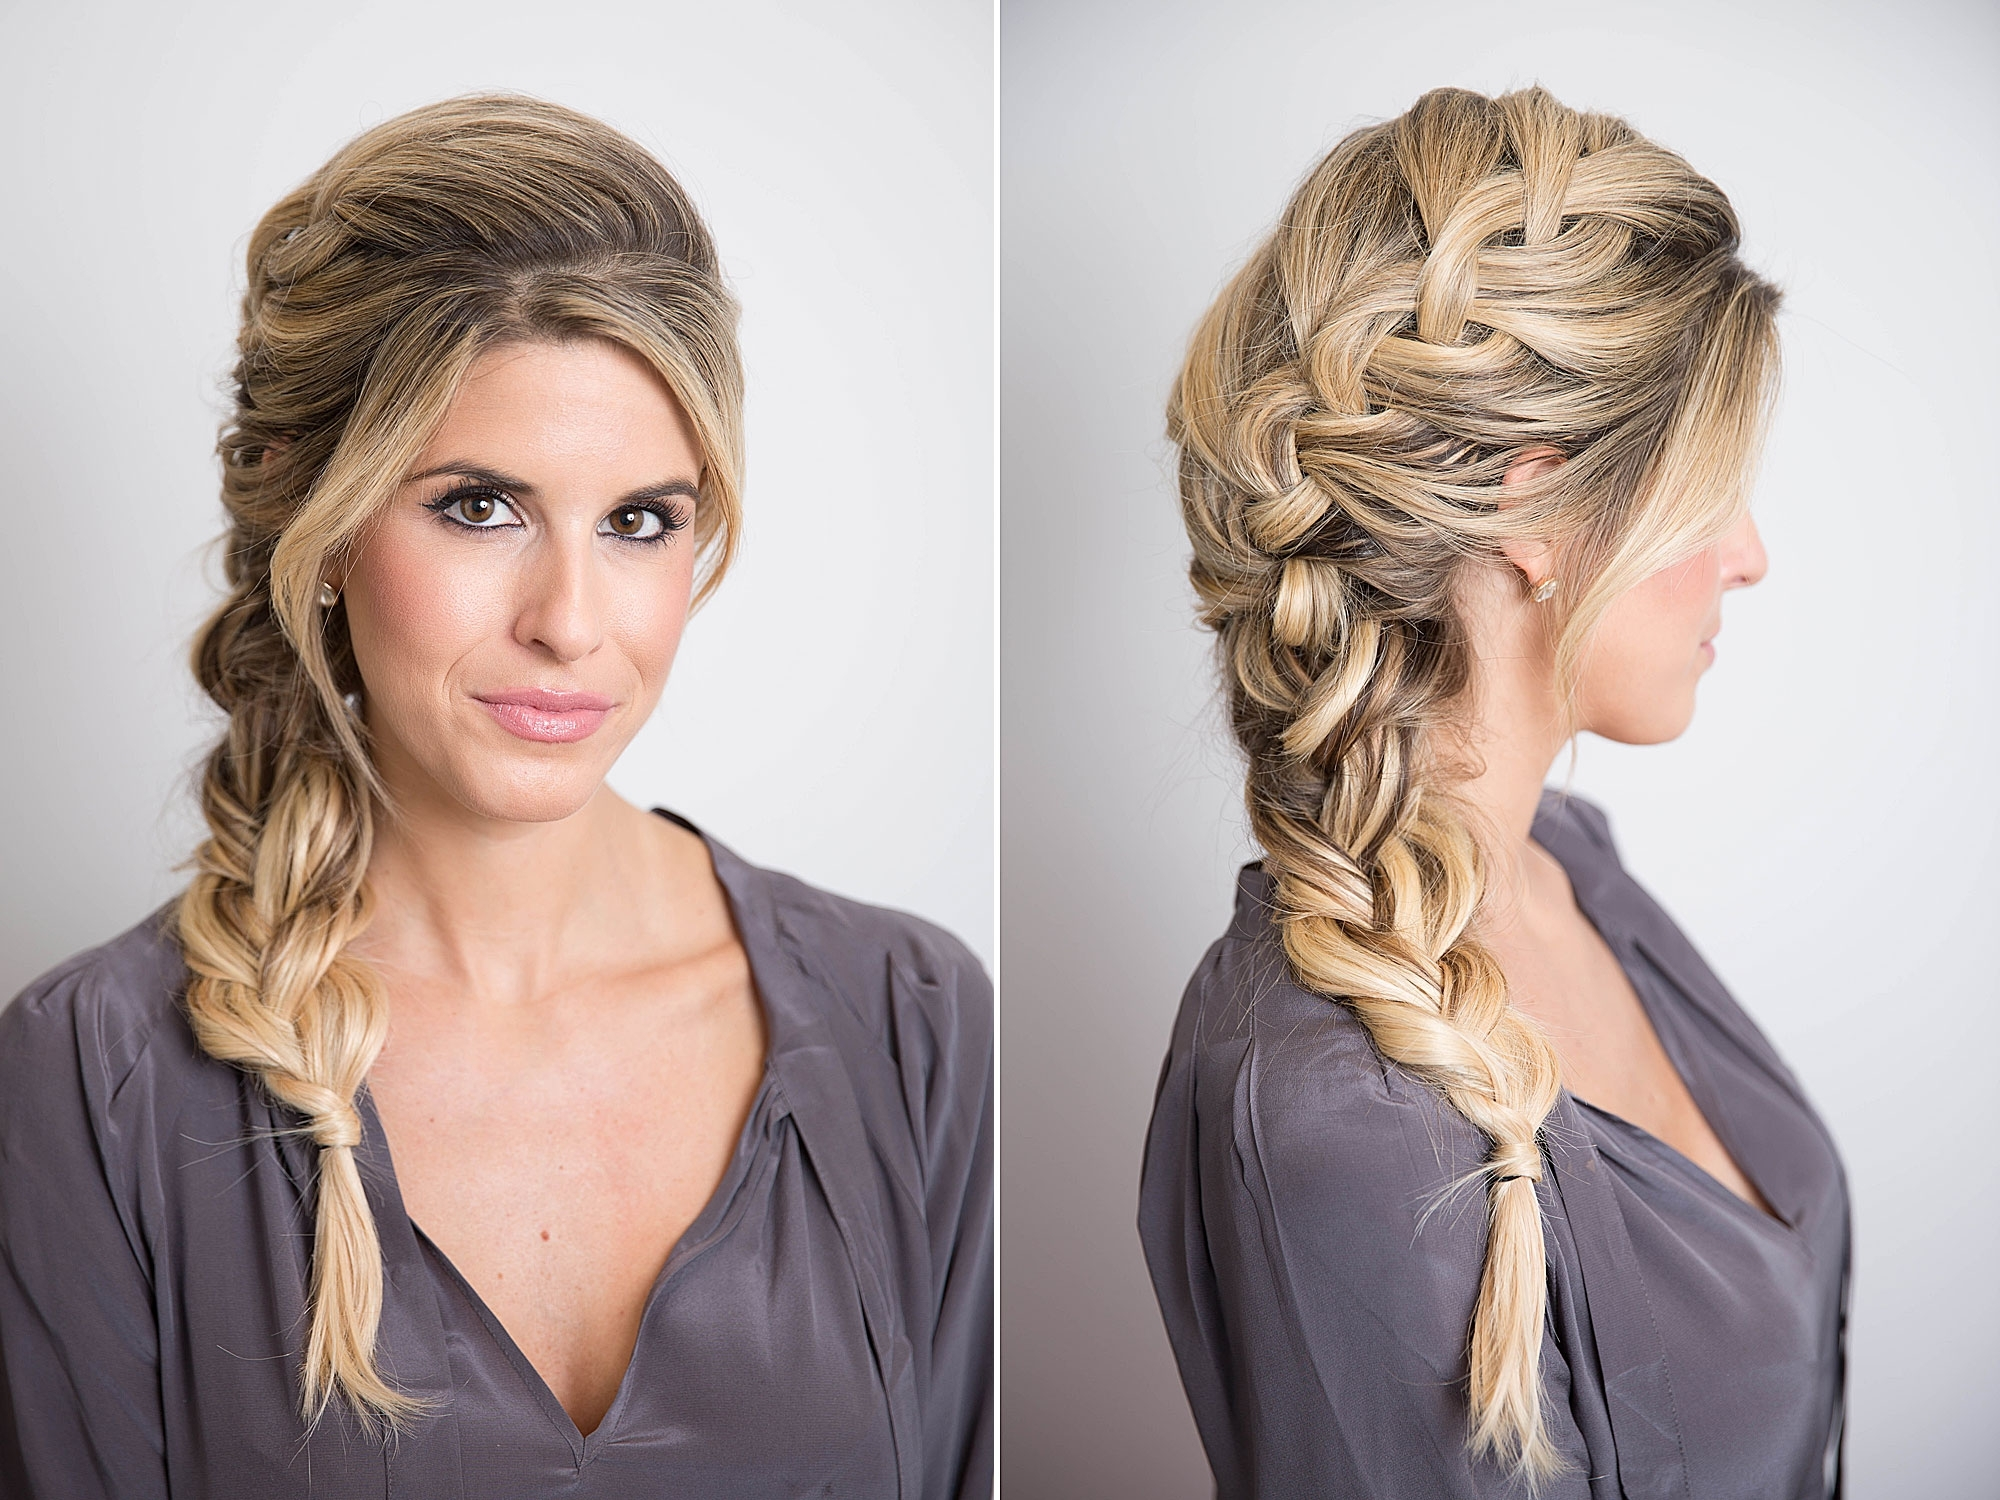 Best And Newest Braided Hairstyles Regarding 20 Best Braided Hairstyles You Should Try In 2018 – Your Glamour (View 7 of 15)